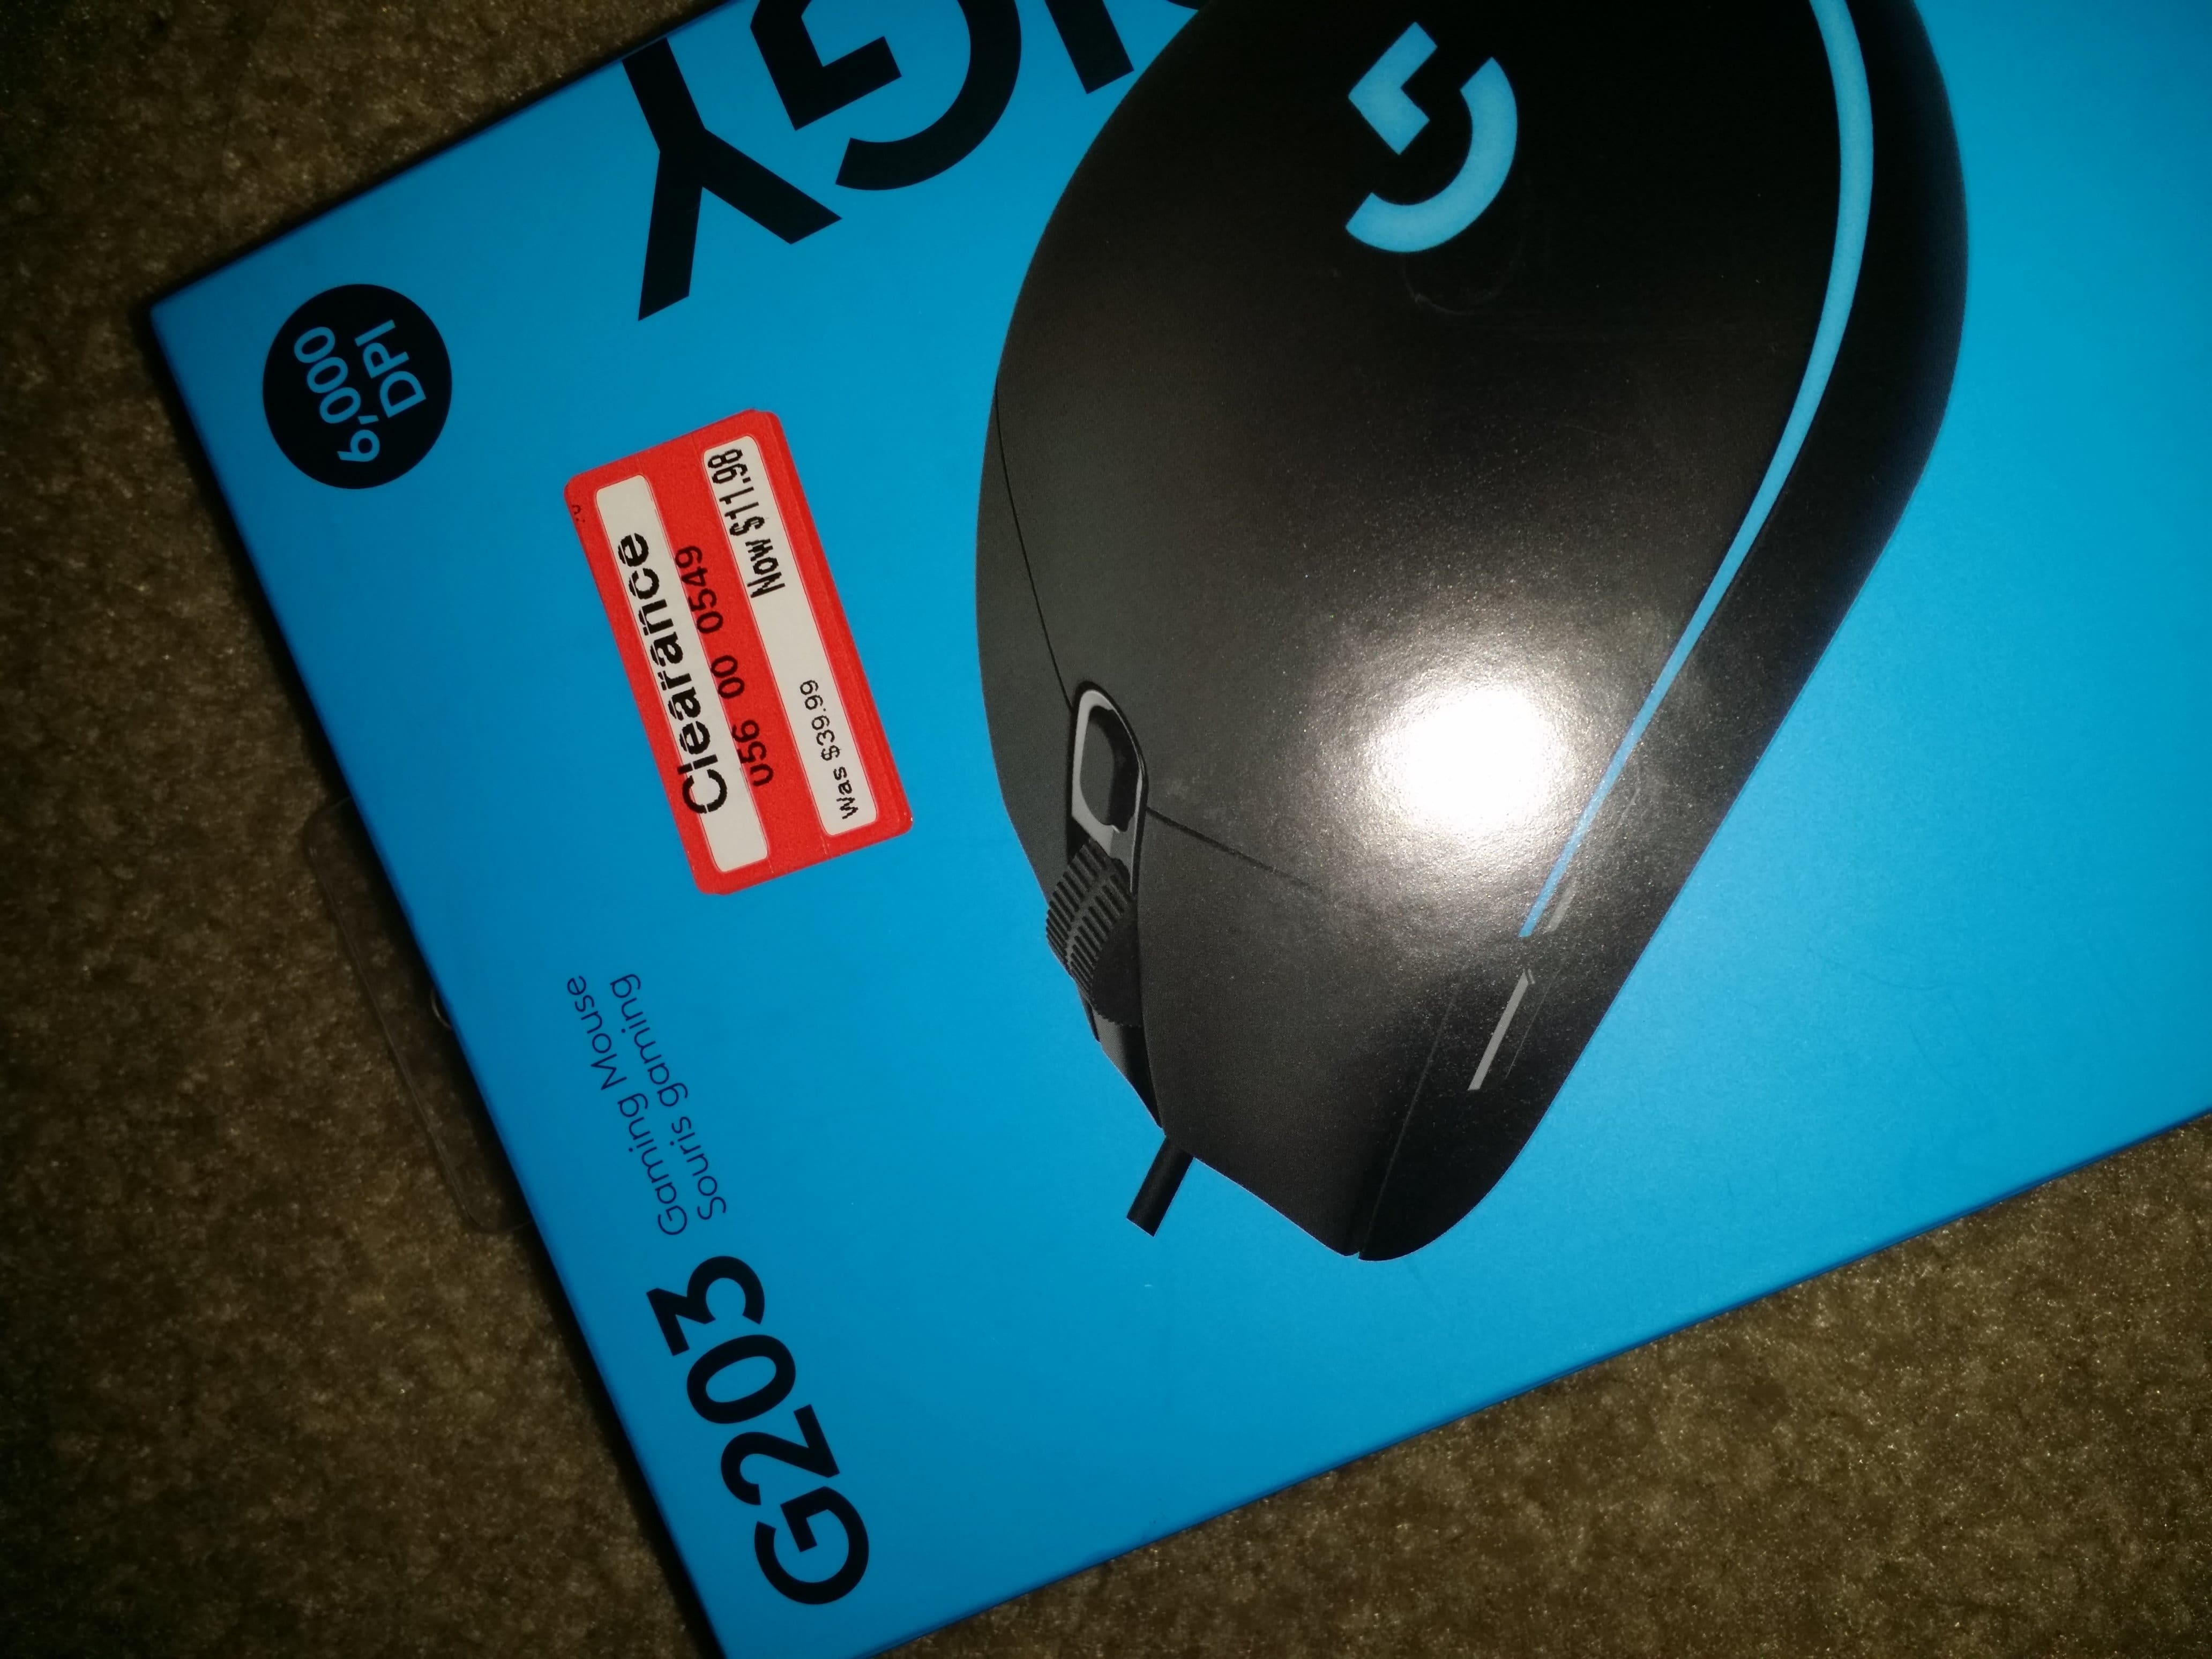 YMMV Logitech G203 Prodigy Gaming Mouse $11.98 @ Target Clearance